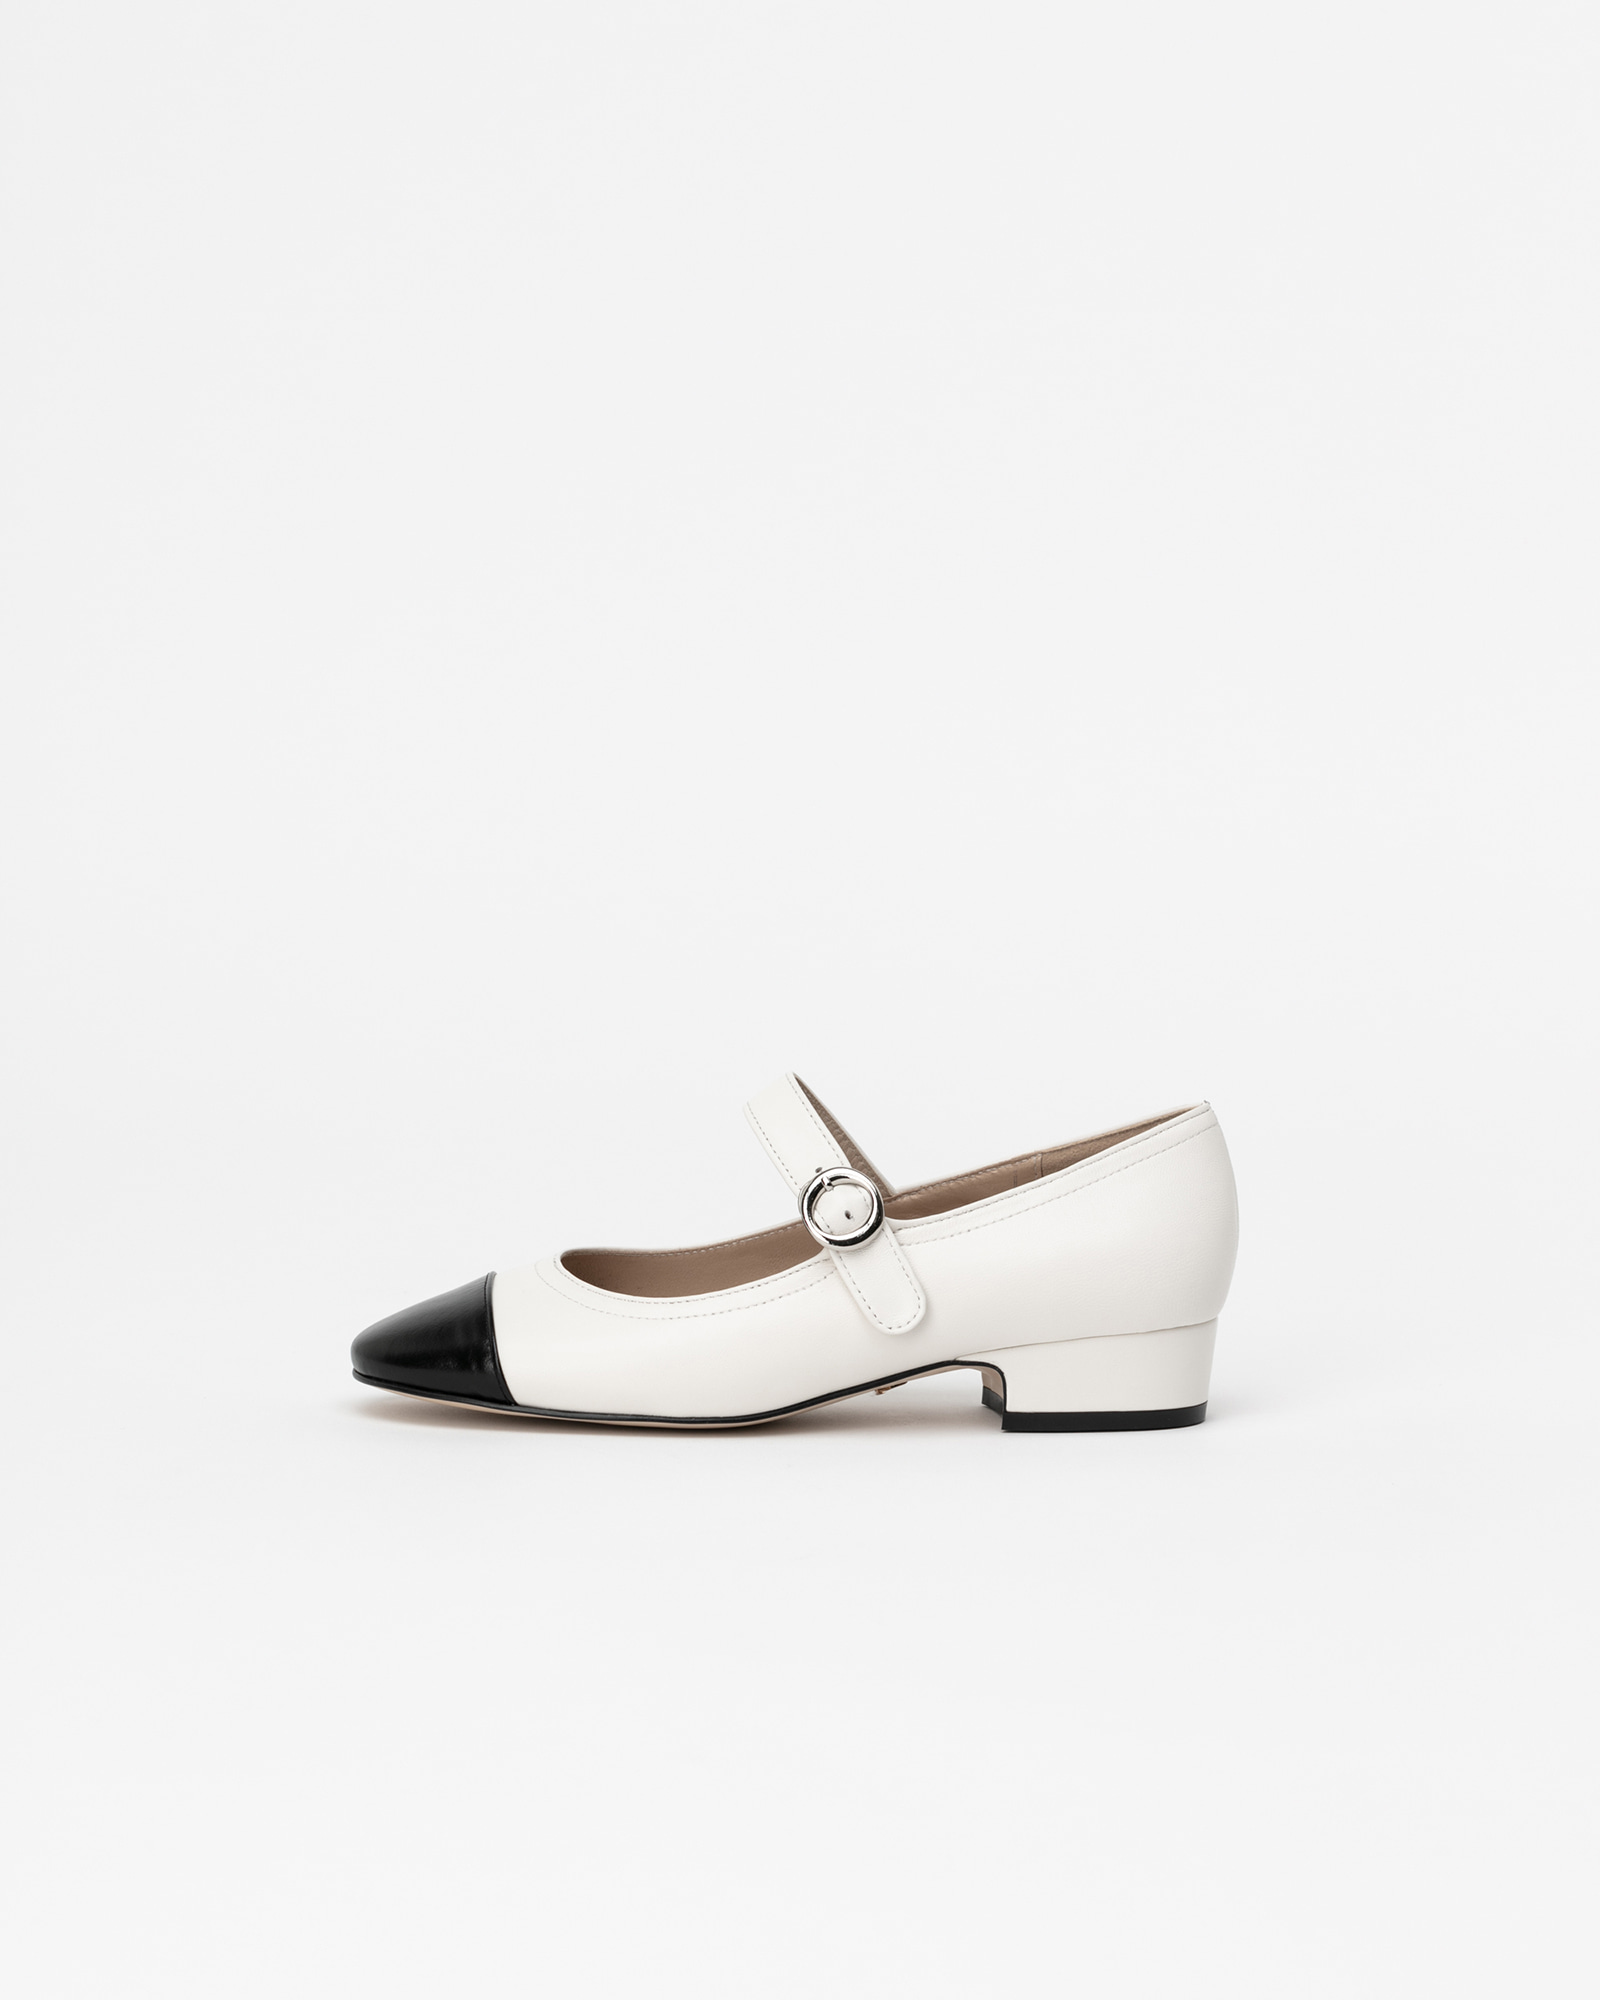 Fatele Maryjane Shoes in White with Black Toe